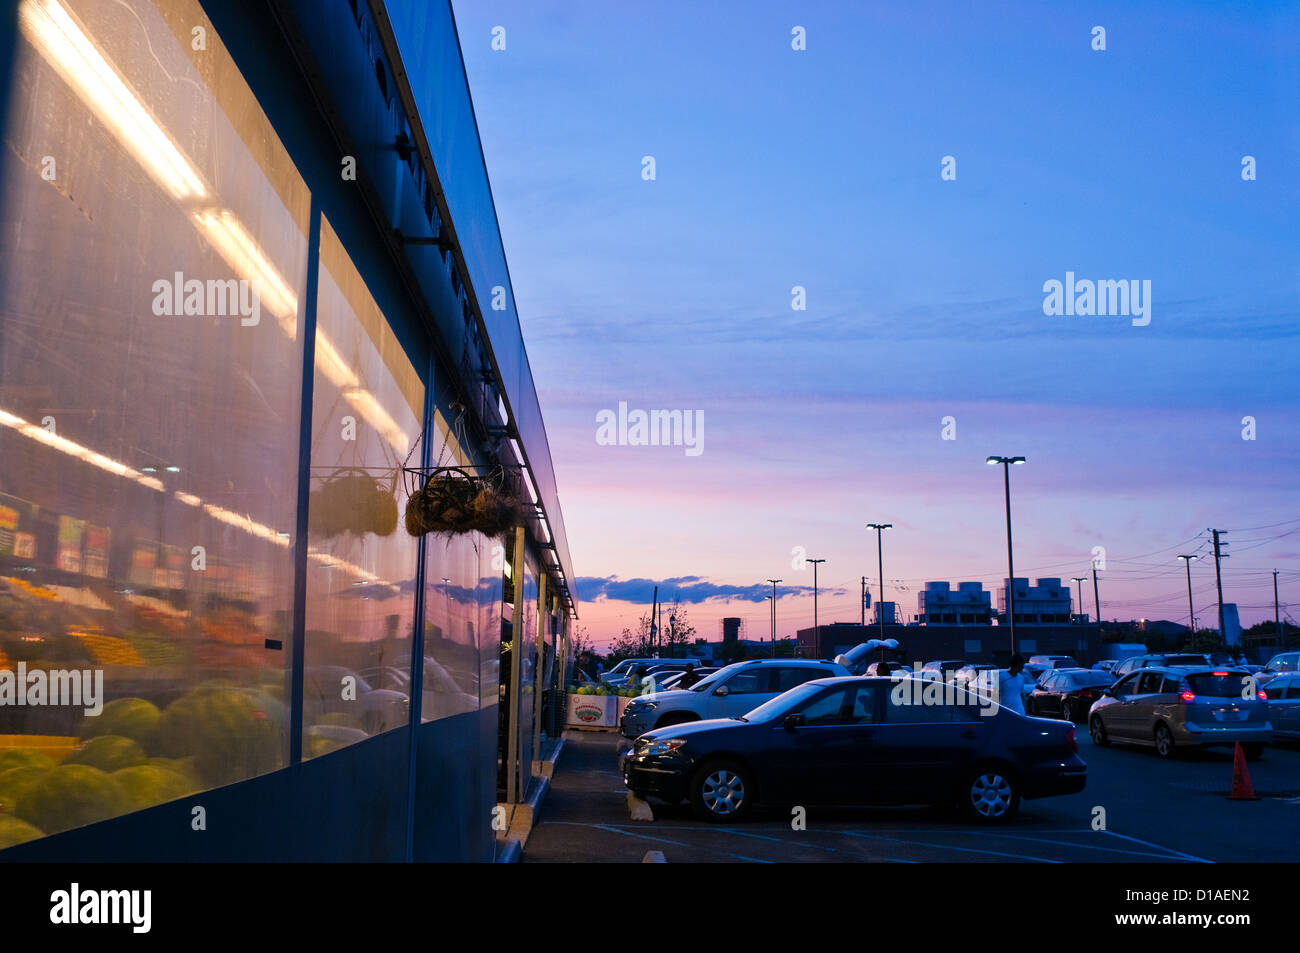 Brooklyn, NY - Fairway Supermarket in Red Hook, Brooklyn - Stock Image